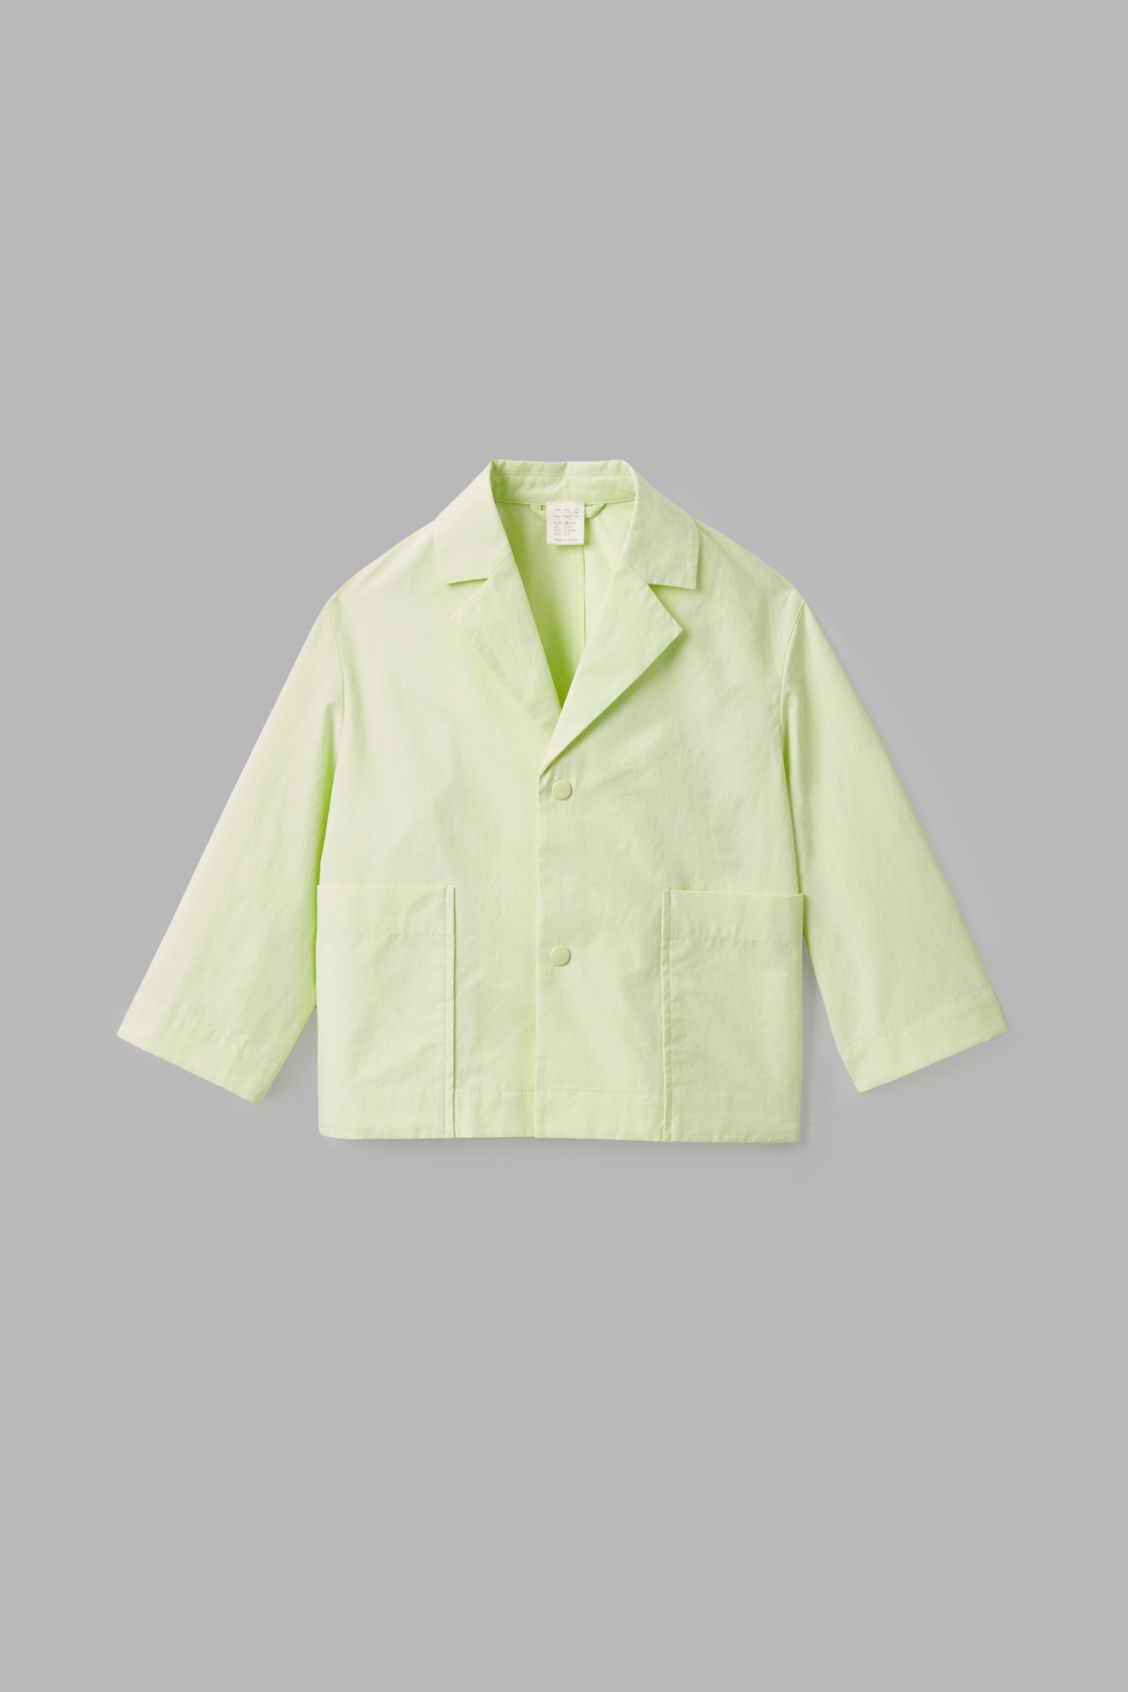 Cos Kids' Cotton Jacket With Lapels In Yellow